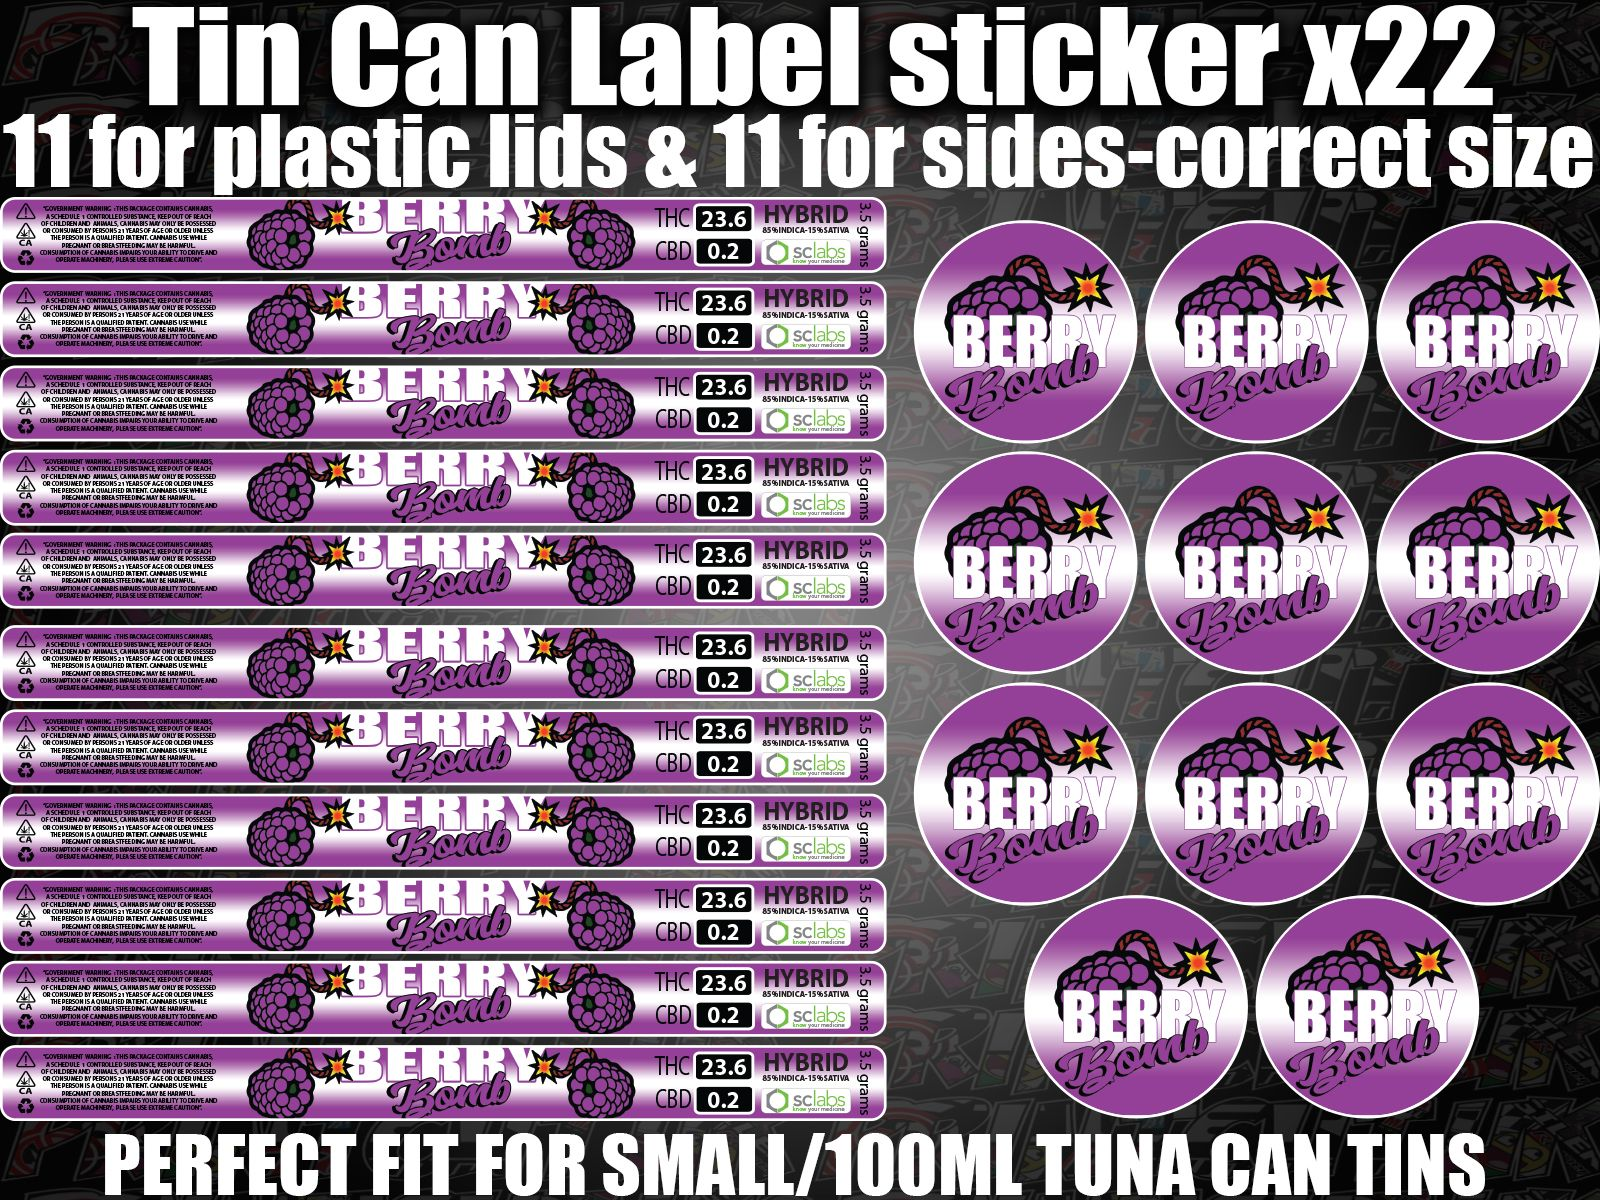 BERRY BOMB Cali pressitin Tin Labels Stickers RX Medical HIGH QUALITY